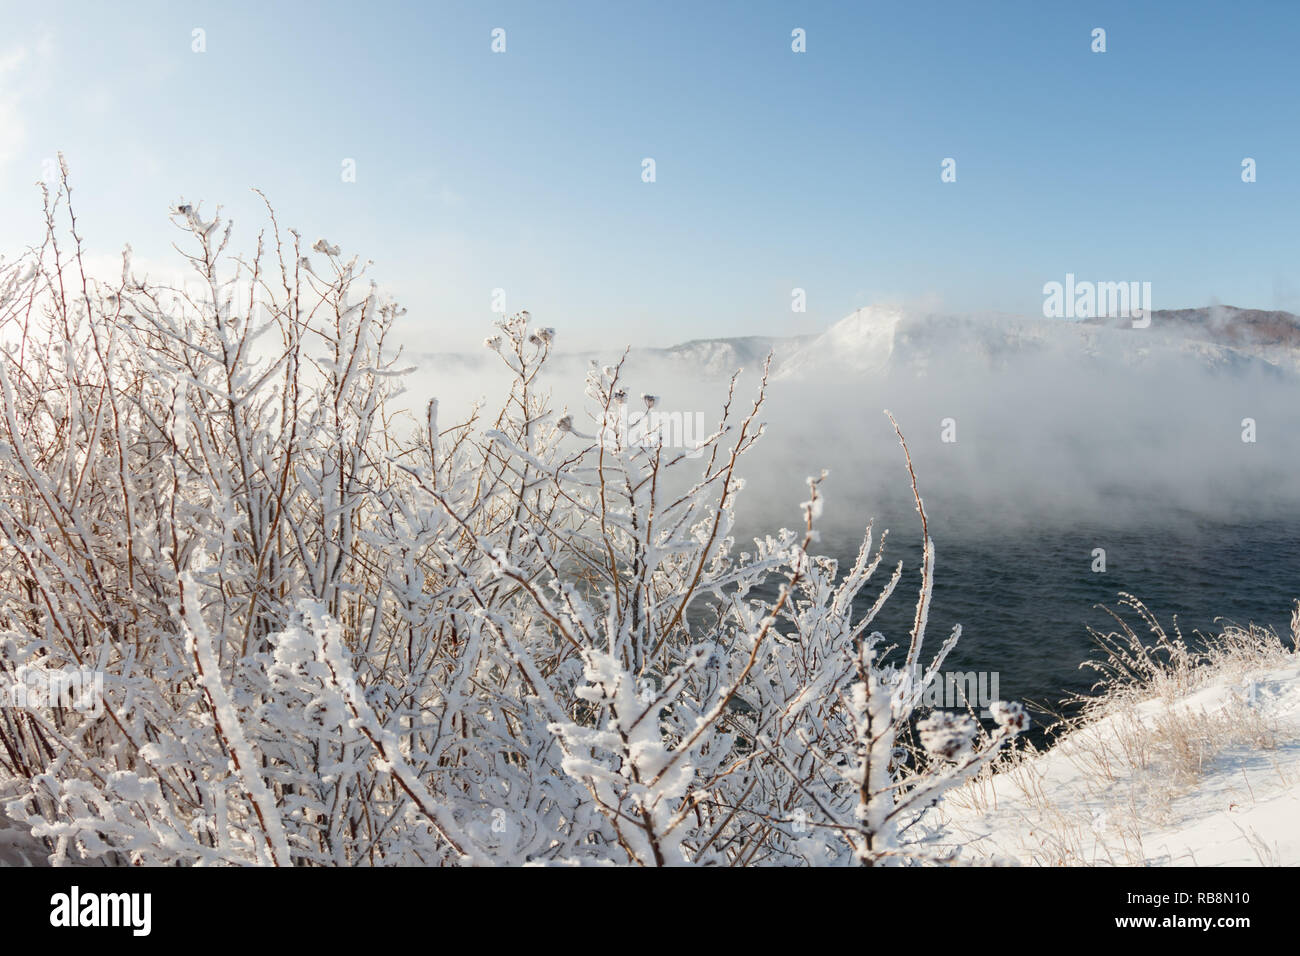 Baikal in winter is covered with water vapor by foggy steam in January. - Stock Image